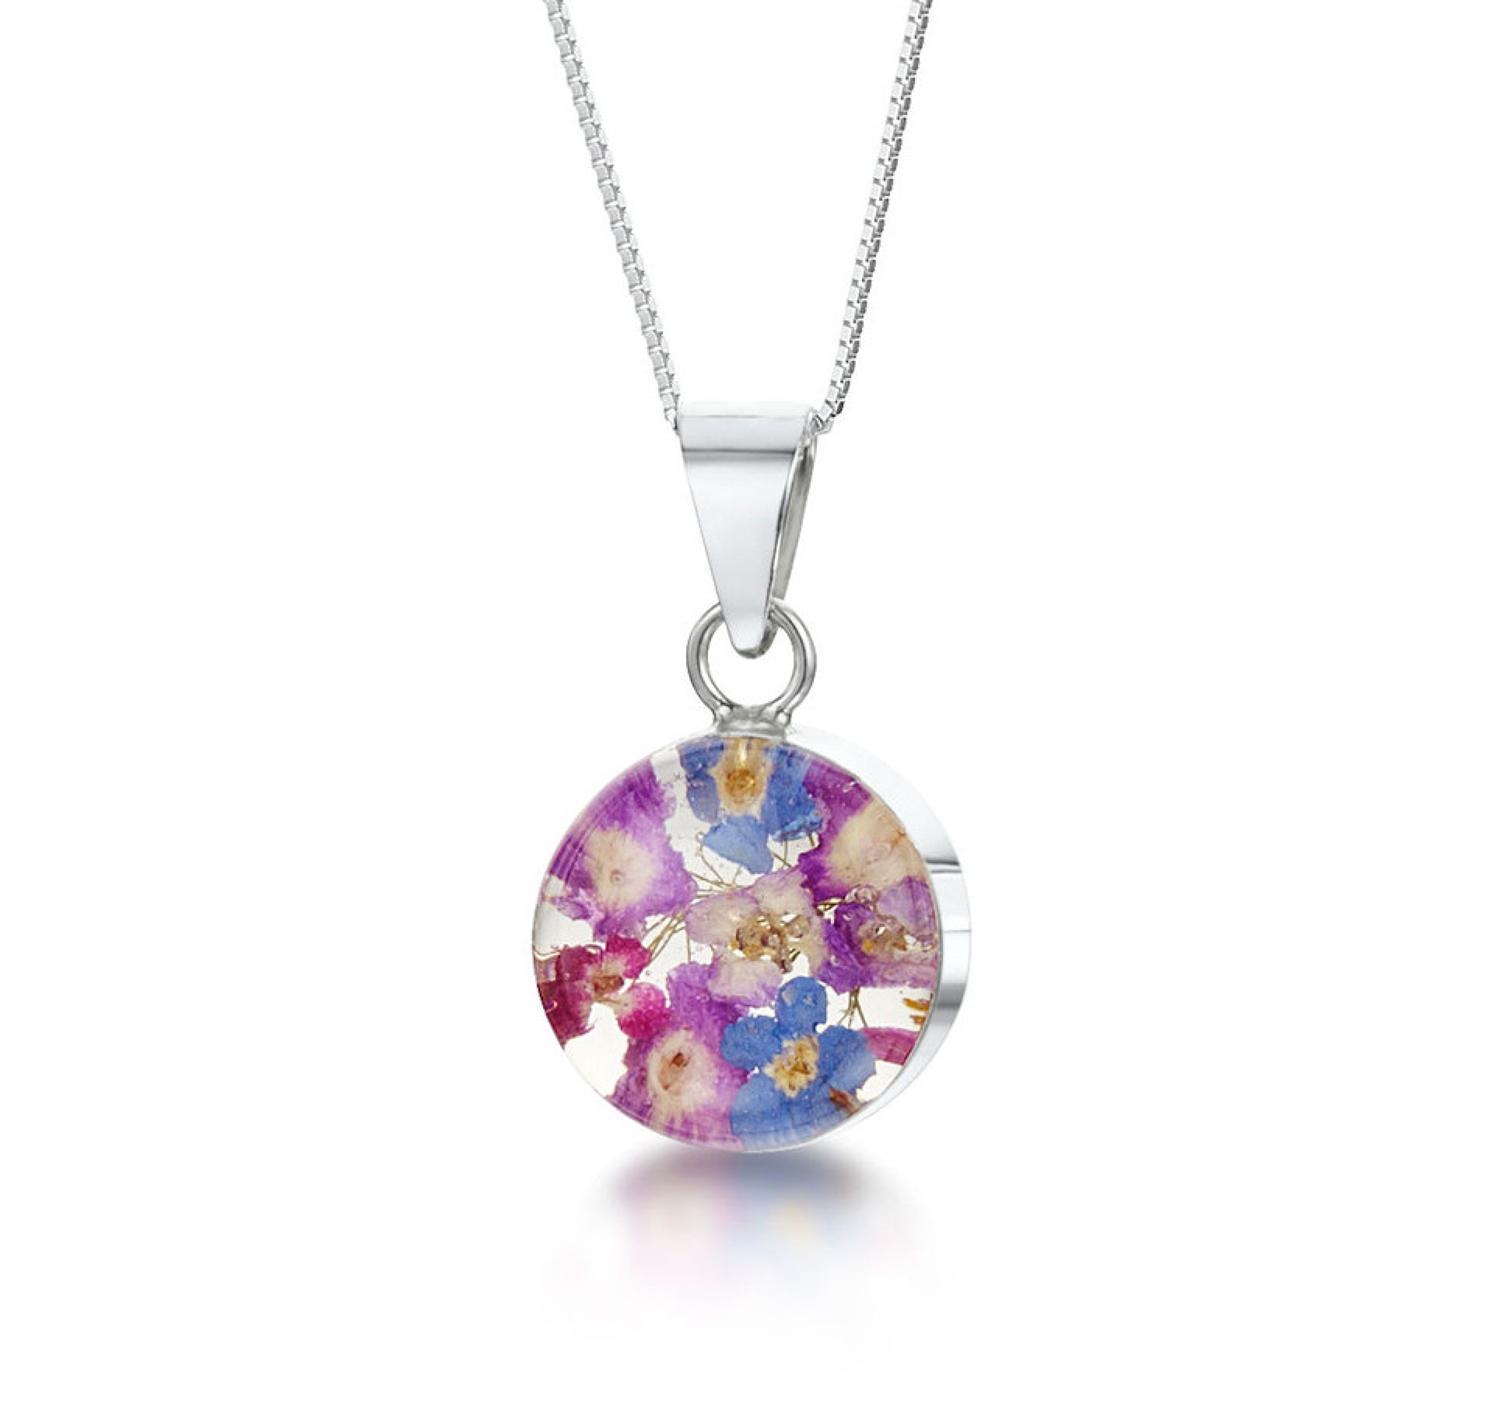 Purple Haze Small Round Pendant